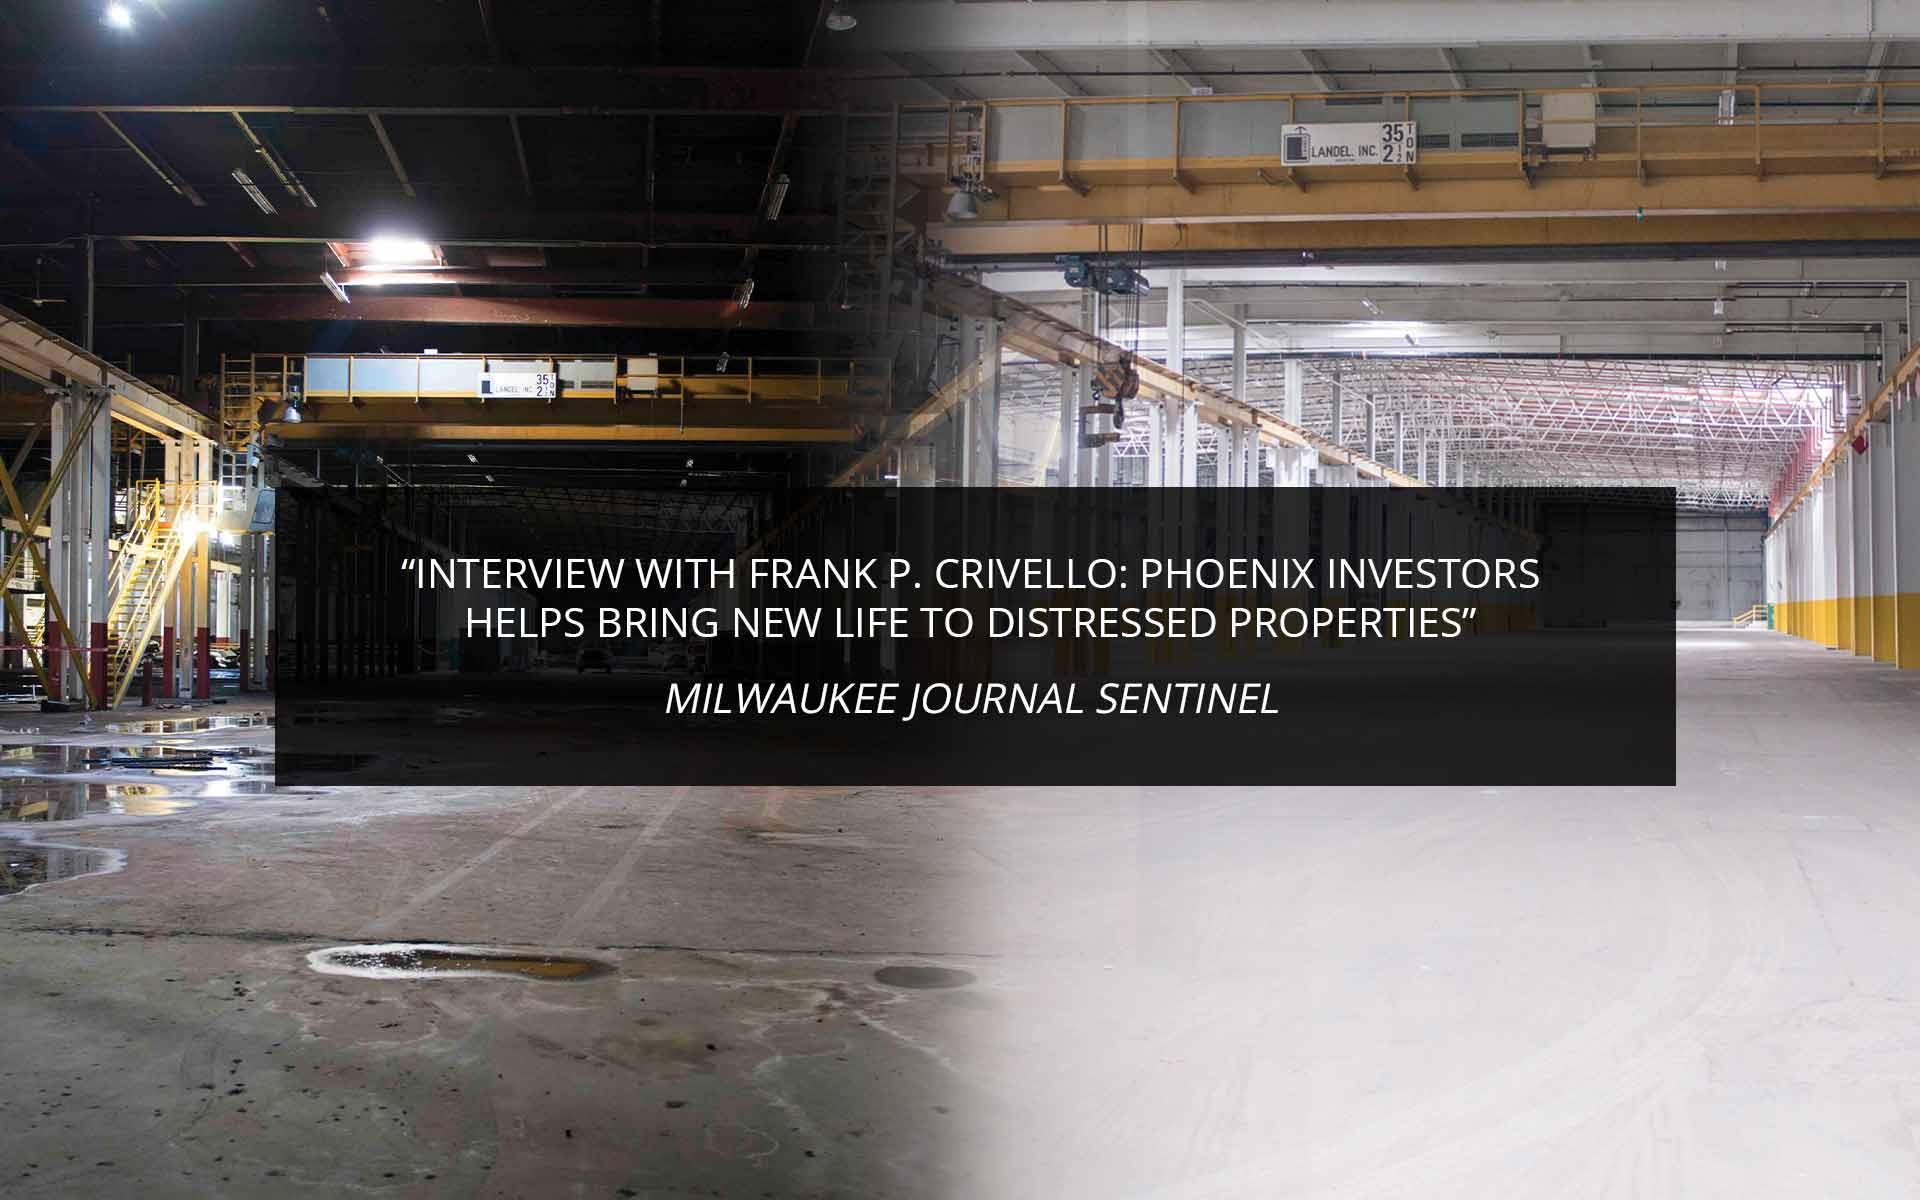 Interview with Frank P. Crivello: Phoenix Investors helps bring new life to distressed properties